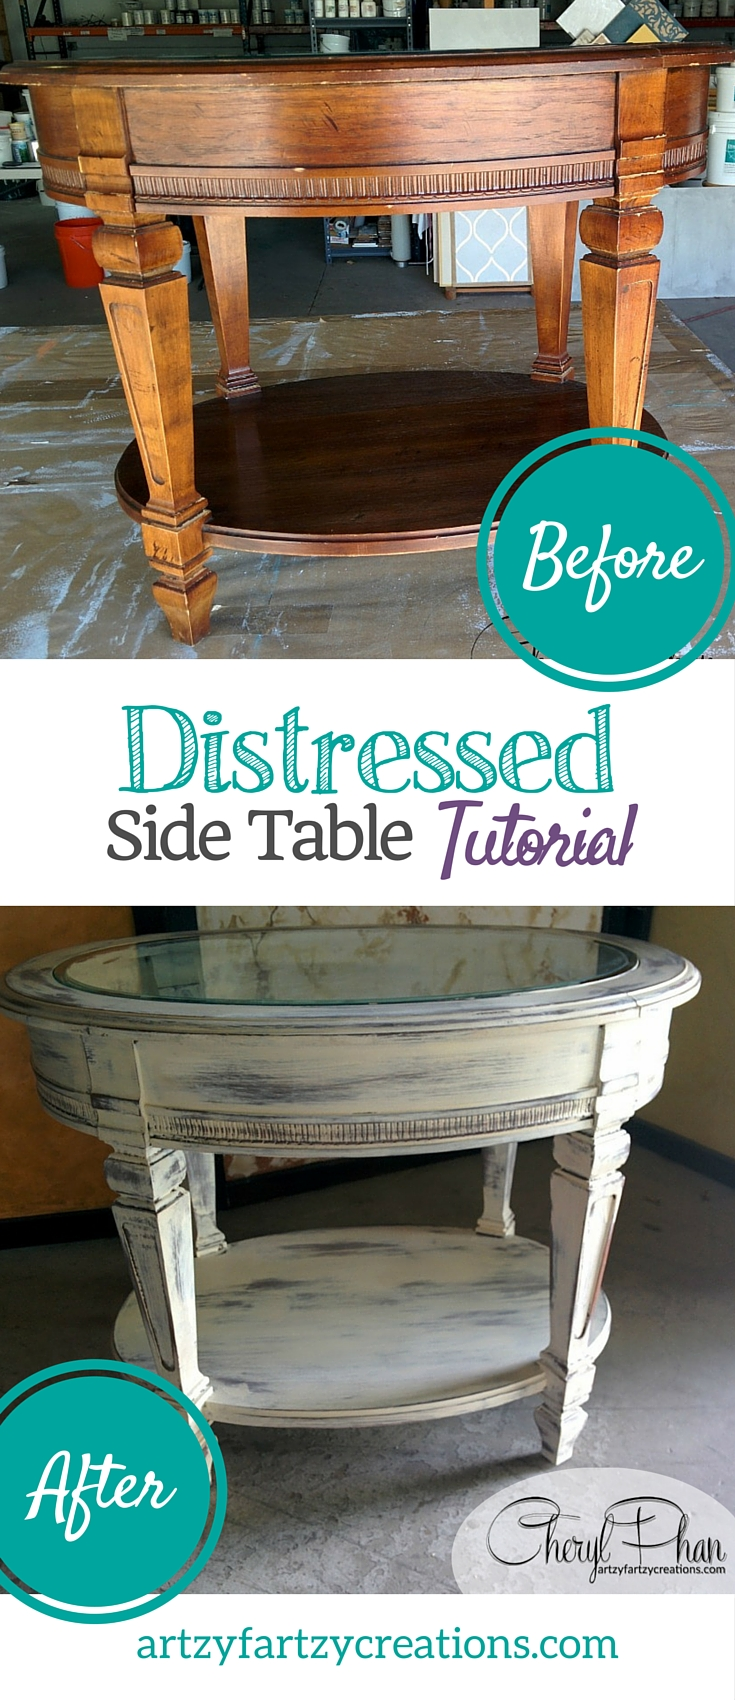 Pin It DIstressed Side Table